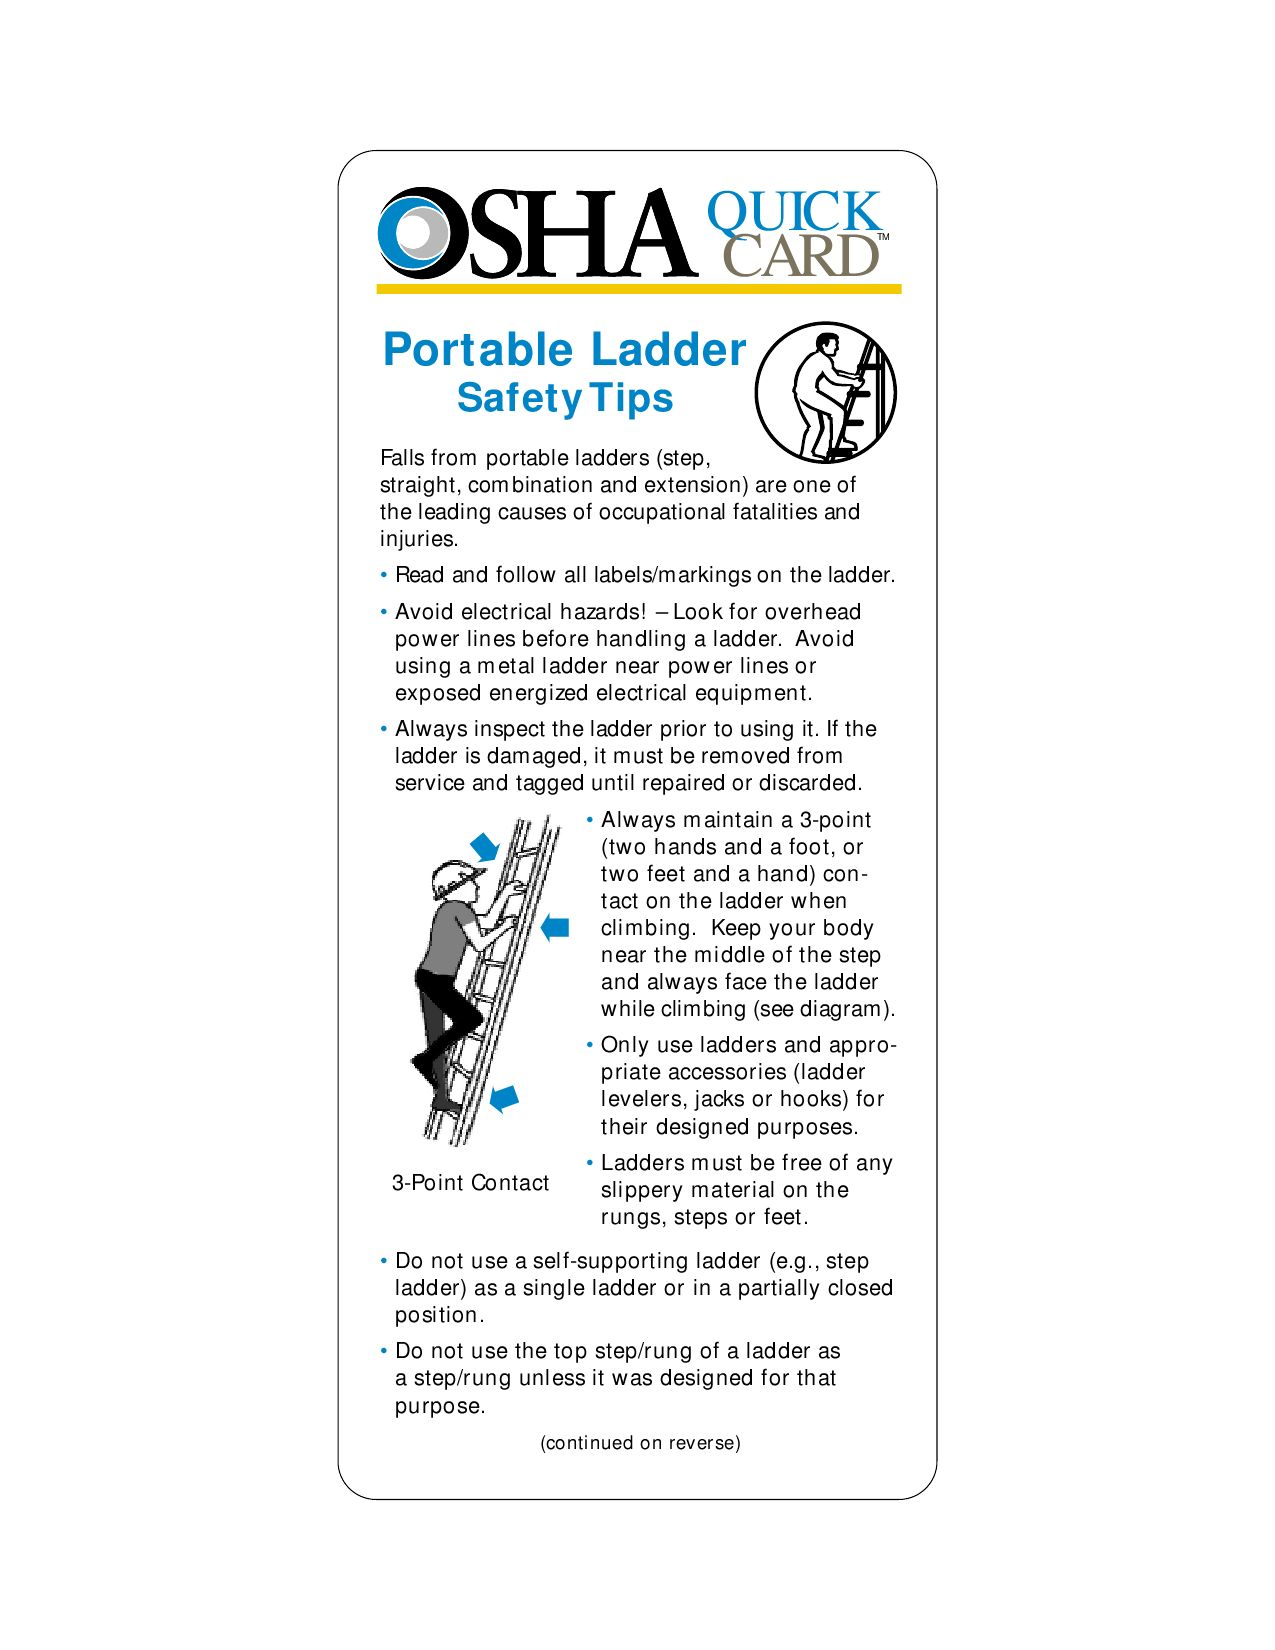 Portable ladder safety quickcard osha 3246 by brian for Ladder safety tips